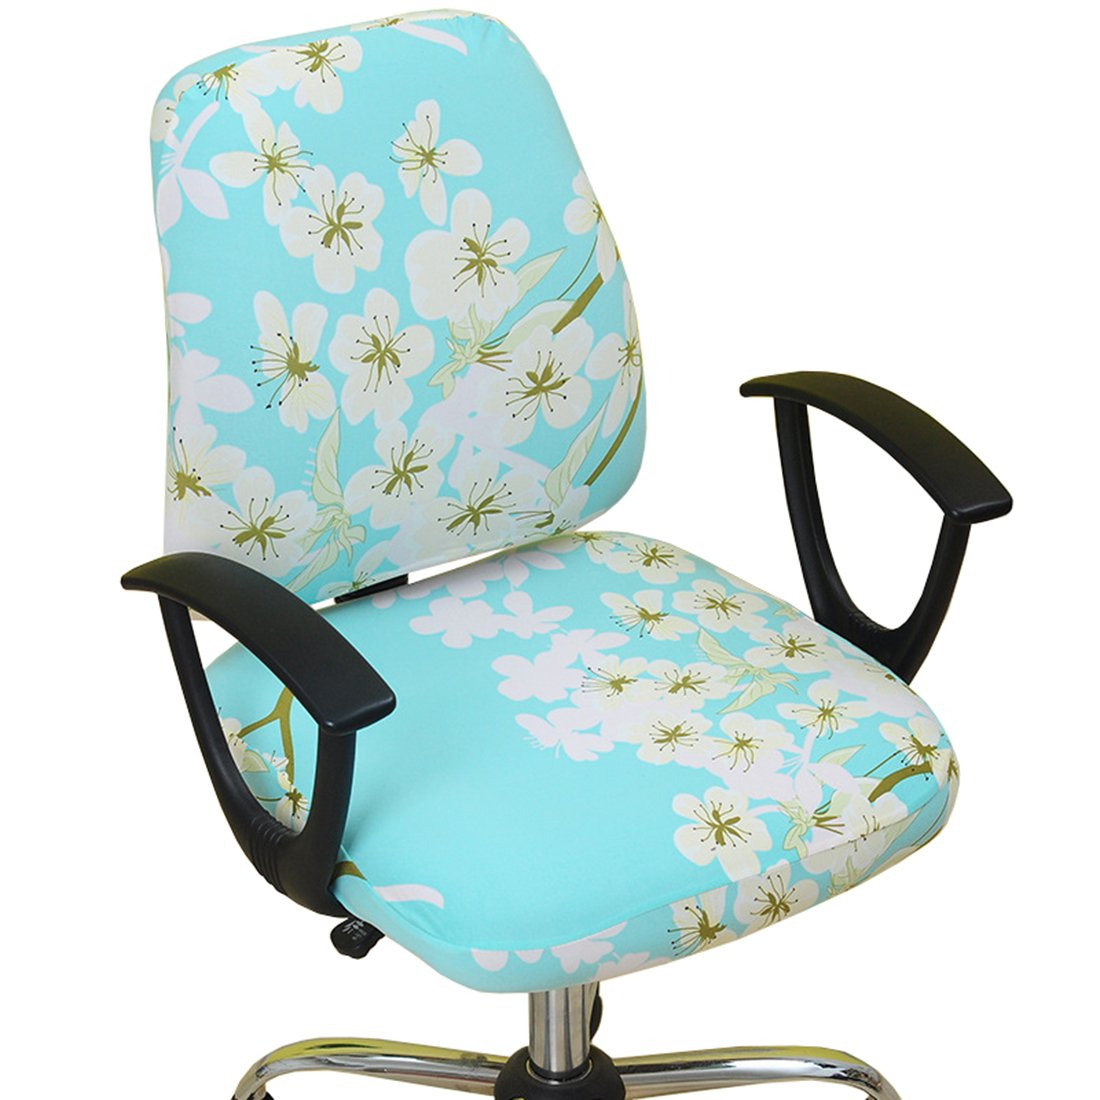 Fantastic Alusbell Office Chair Cover Universal Fit Computer Chair Universal Boss Chair Cover 1 Set 2 Pcs Mint Floral Inzonedesignstudio Interior Chair Design Inzonedesignstudiocom